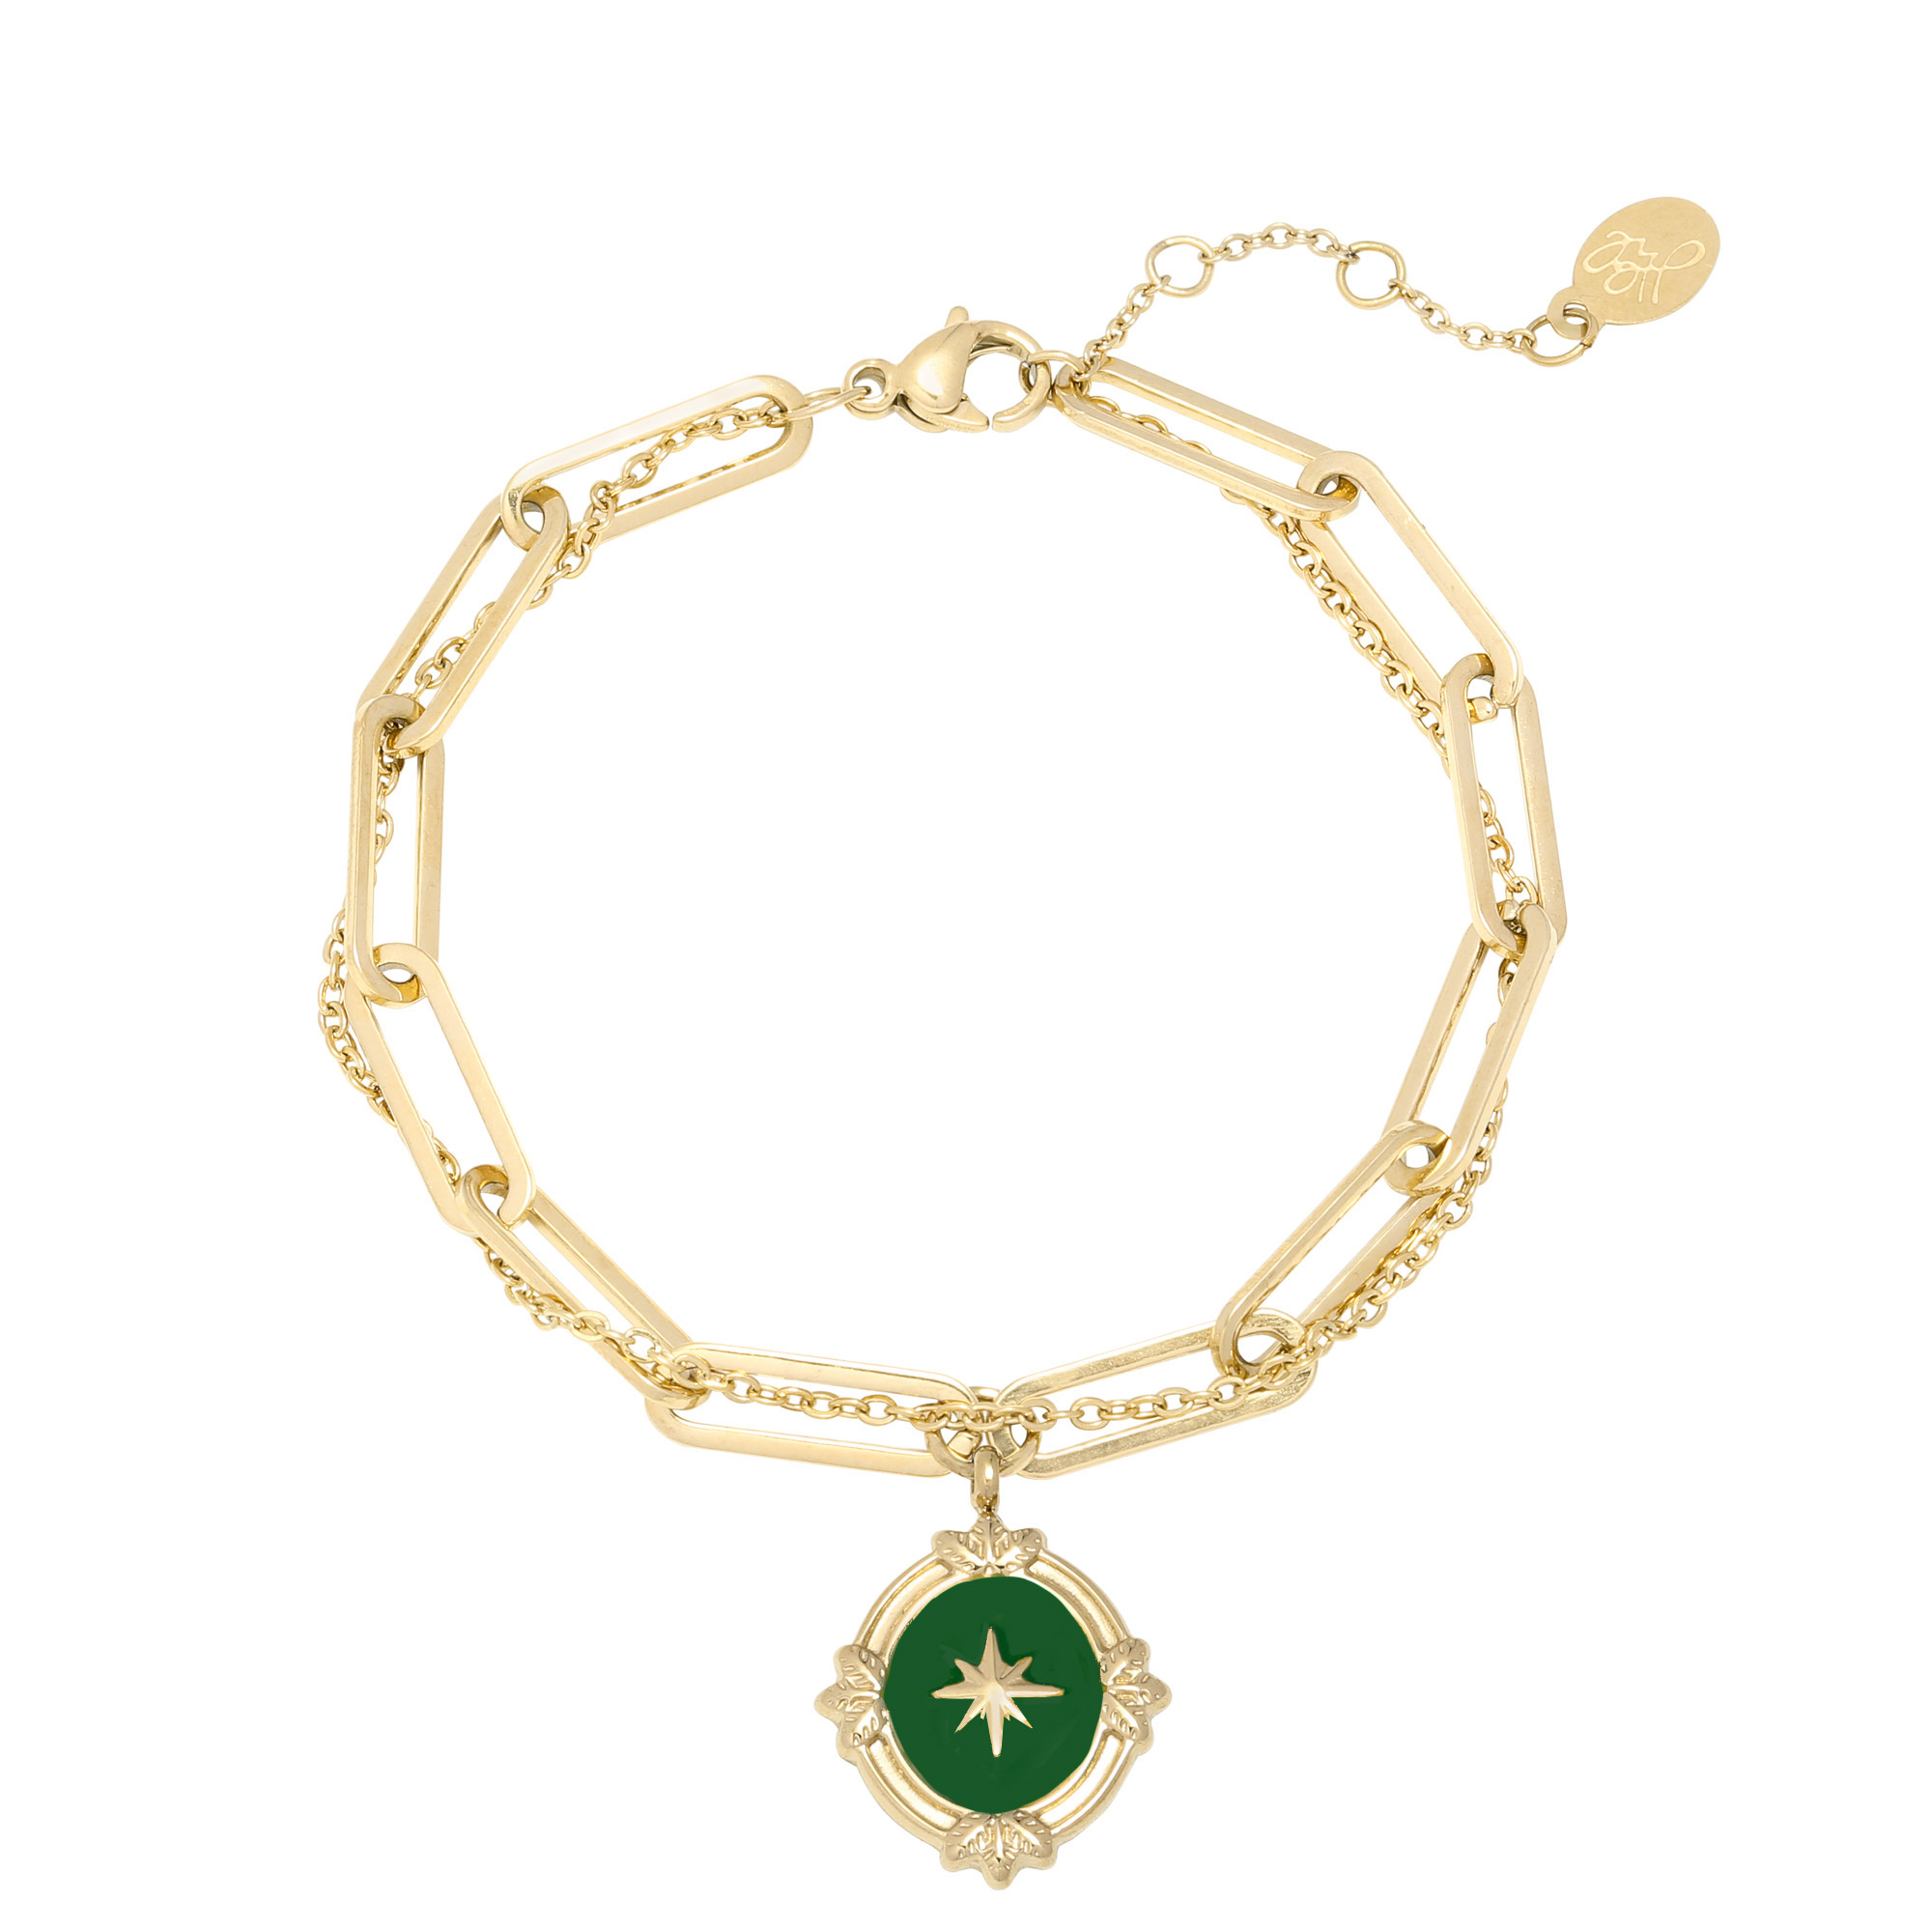 Armband Thick and Thin - Northern Star